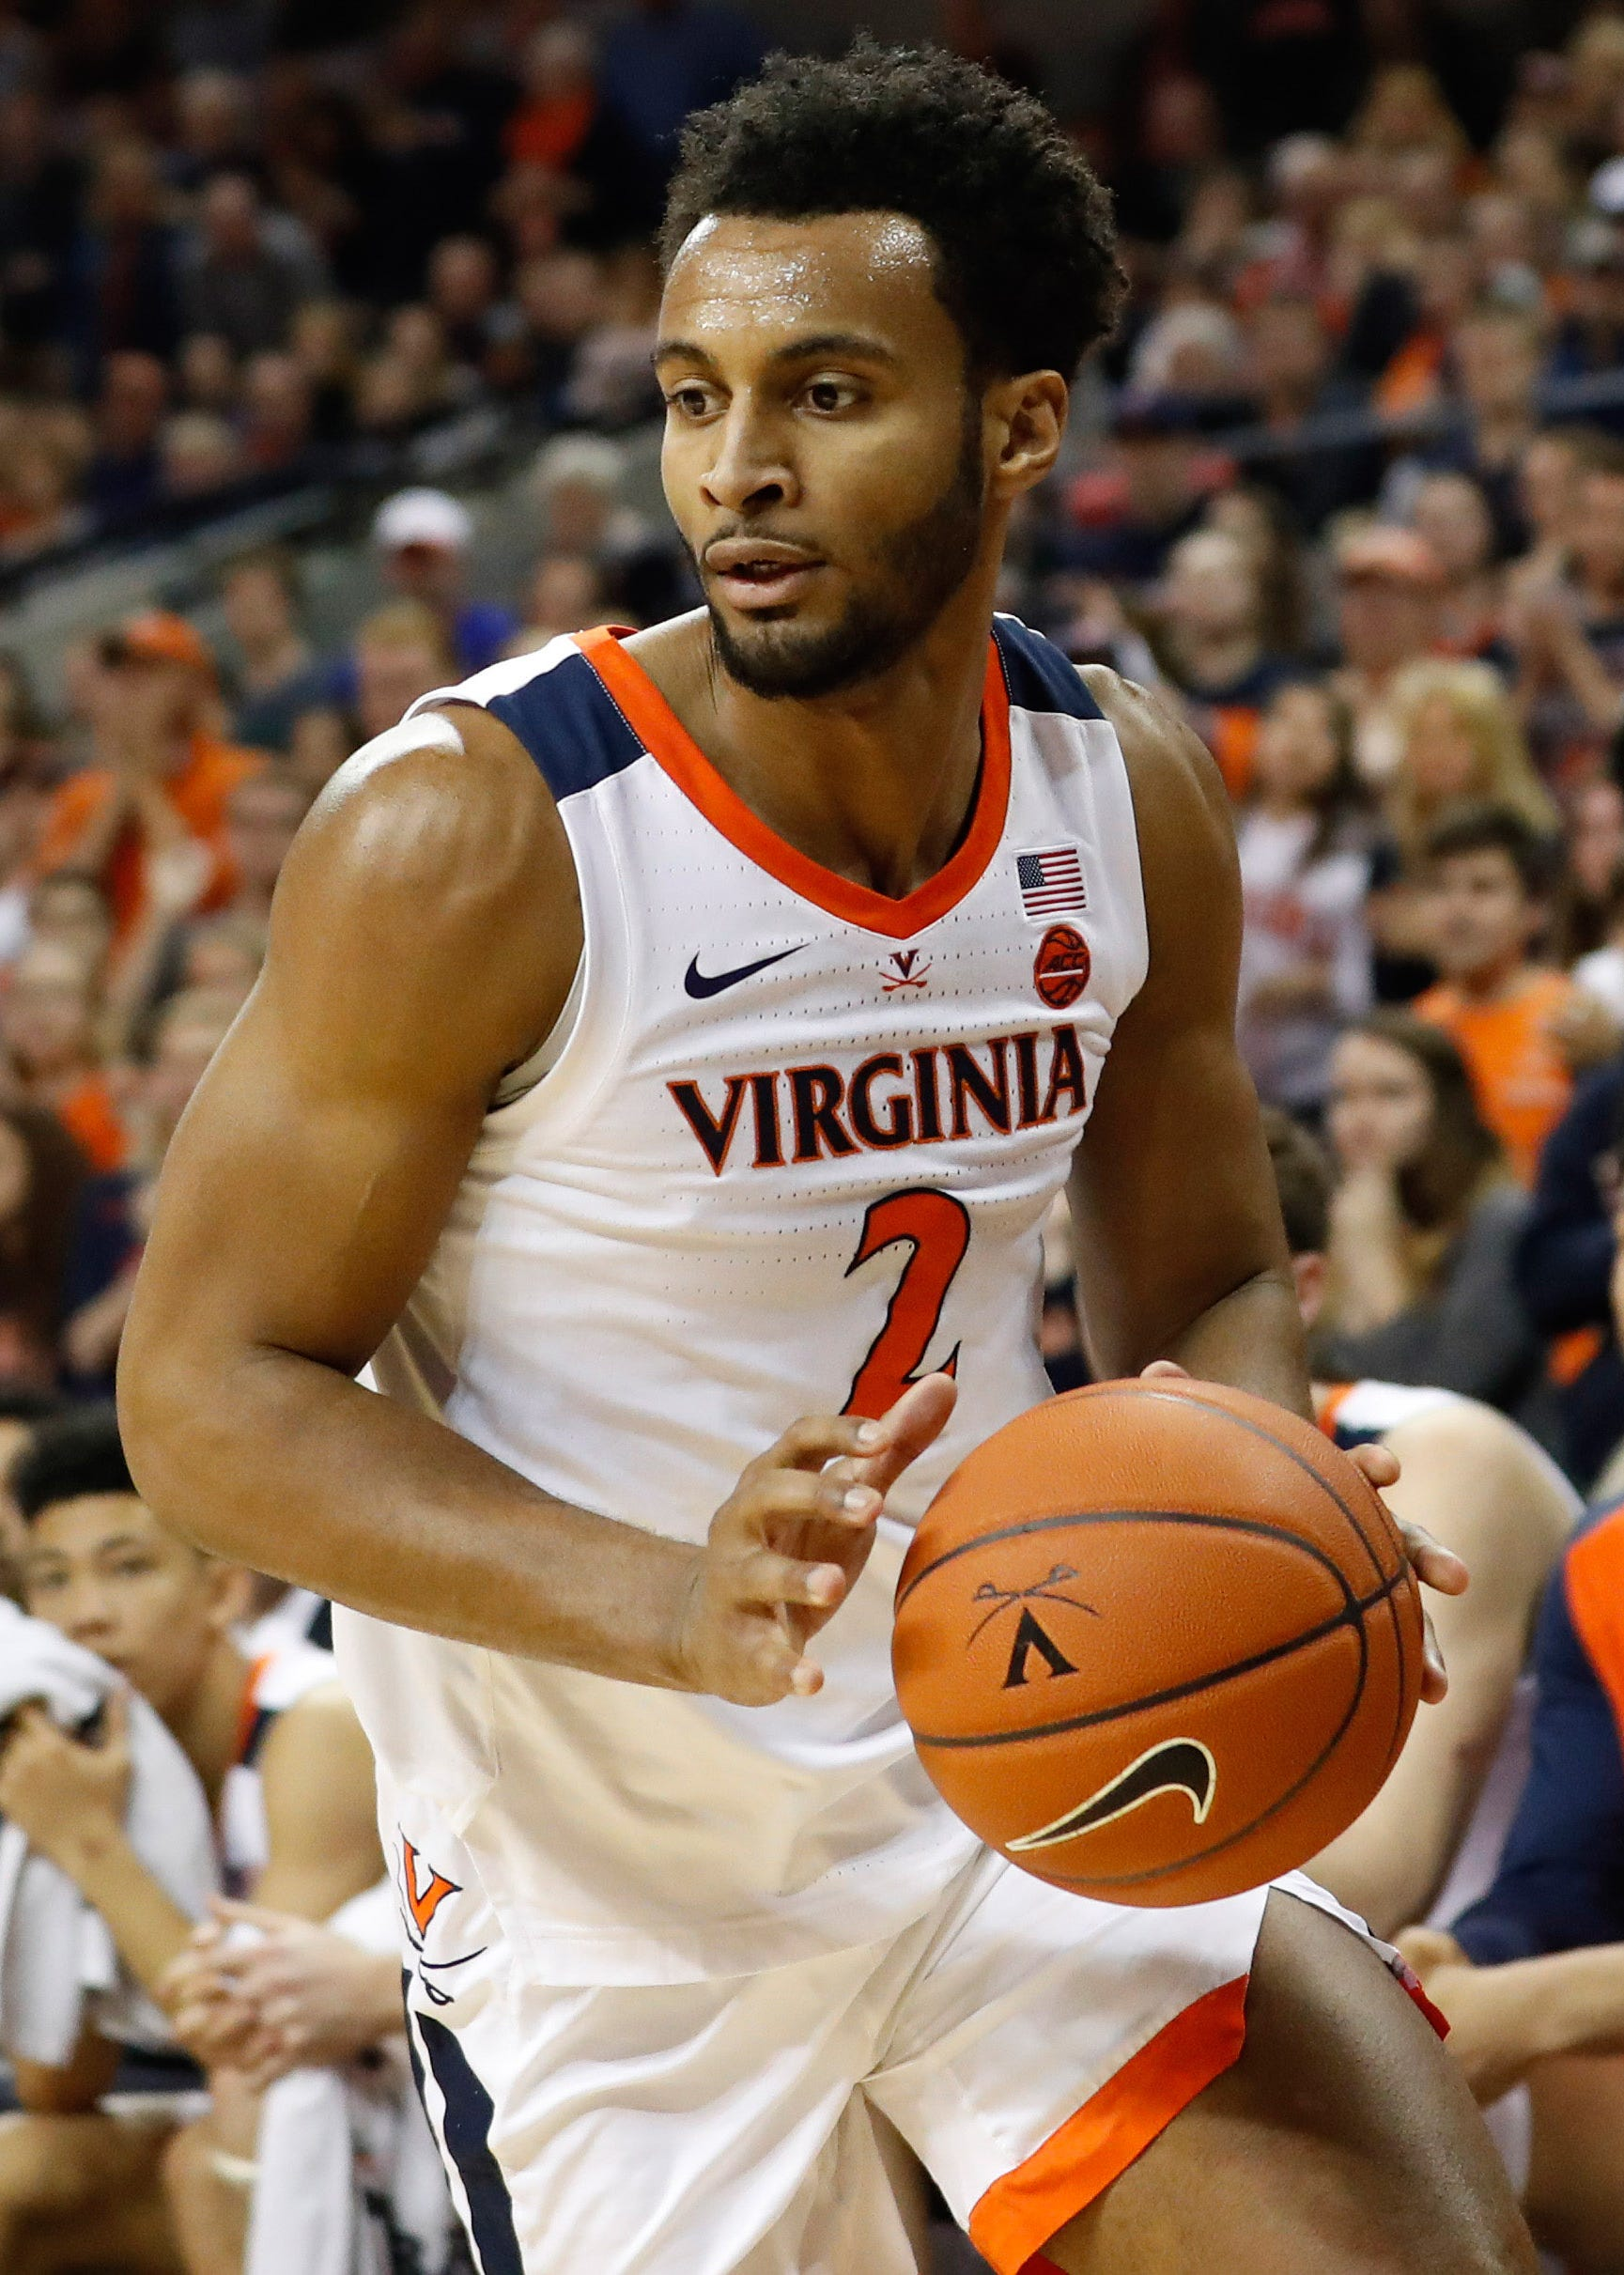 Braxton Key and the Cavaliers will look to avoid the embarrassment experienced in last year's tournament.